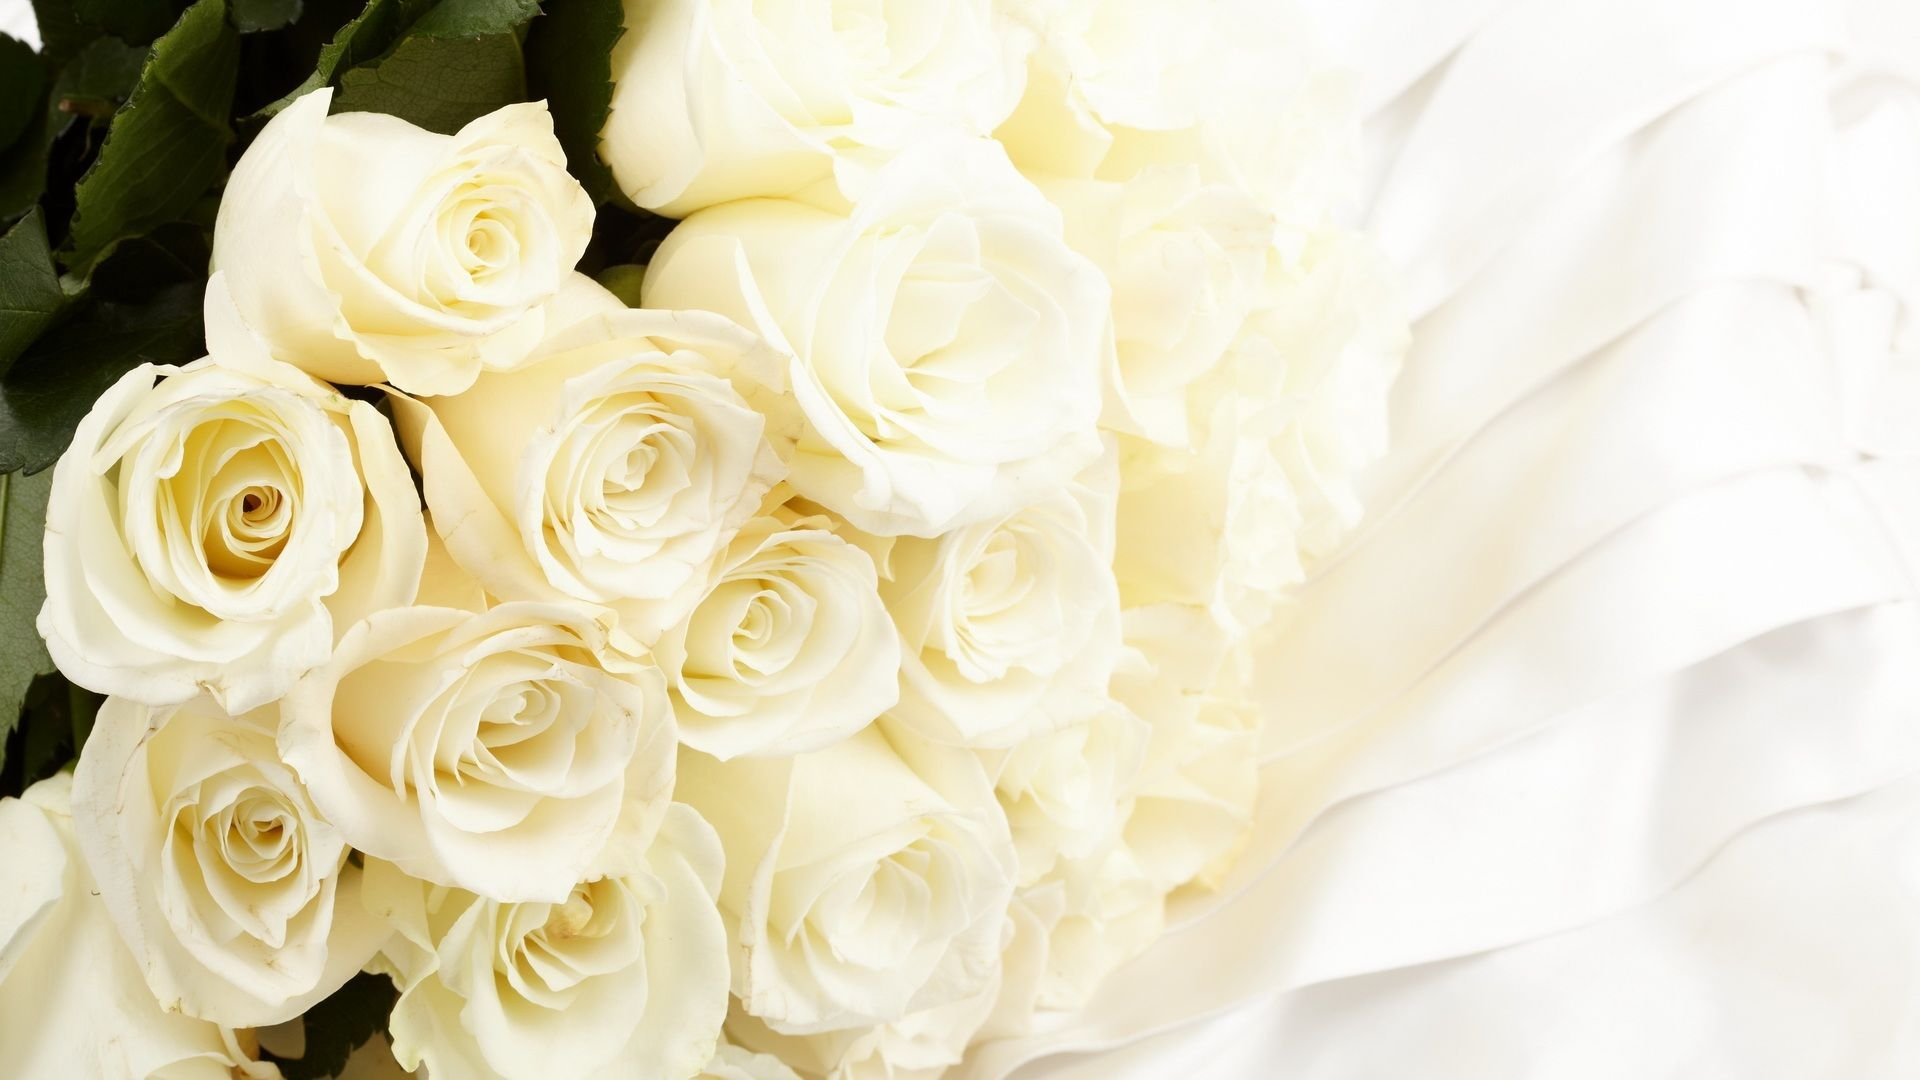 HD Wallpaper And Background Photos Of Pure White Roses For Fans Images